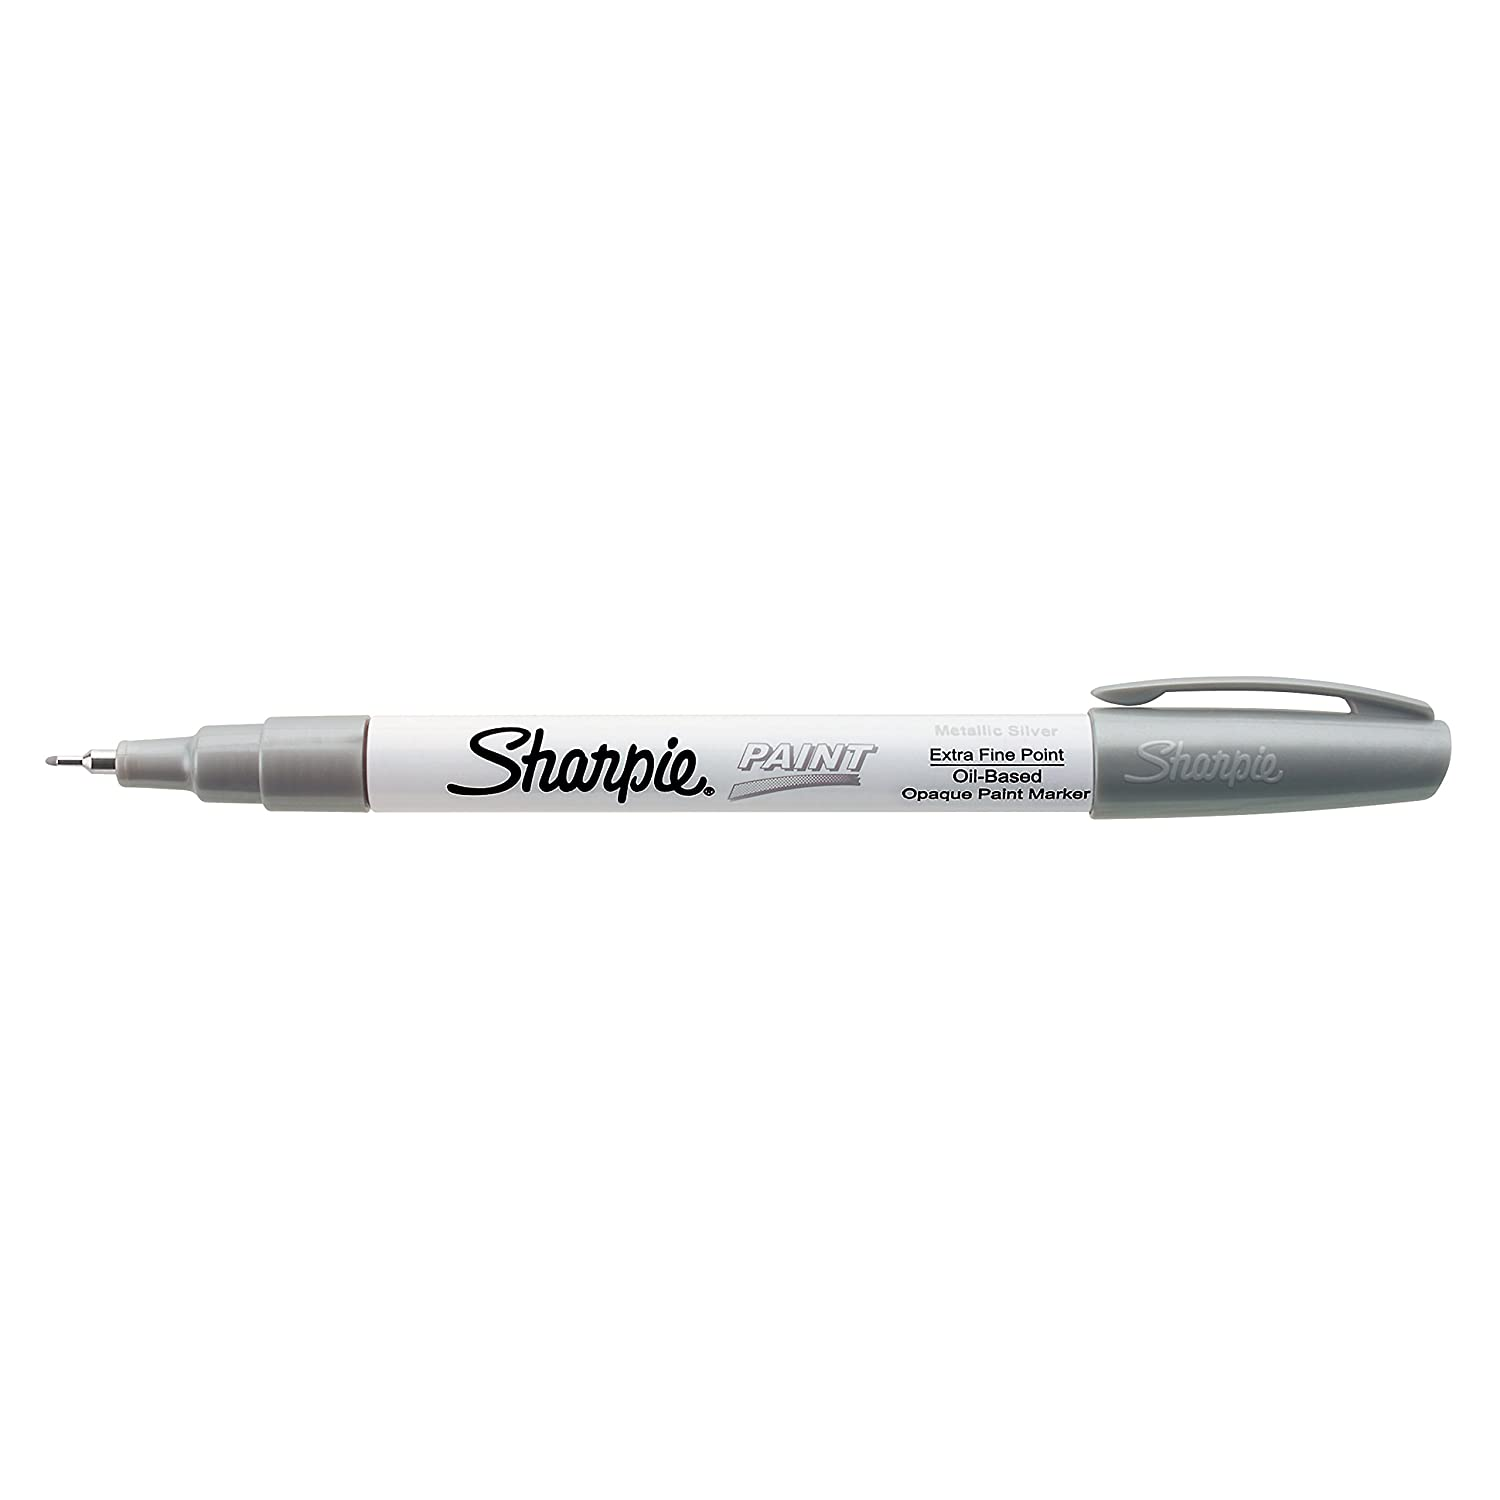 Sharpie Oil-Based Paint Marker, Extra Fine Point, Black, 1 Count - Great for Rock Painting (35526) Cell Distributors